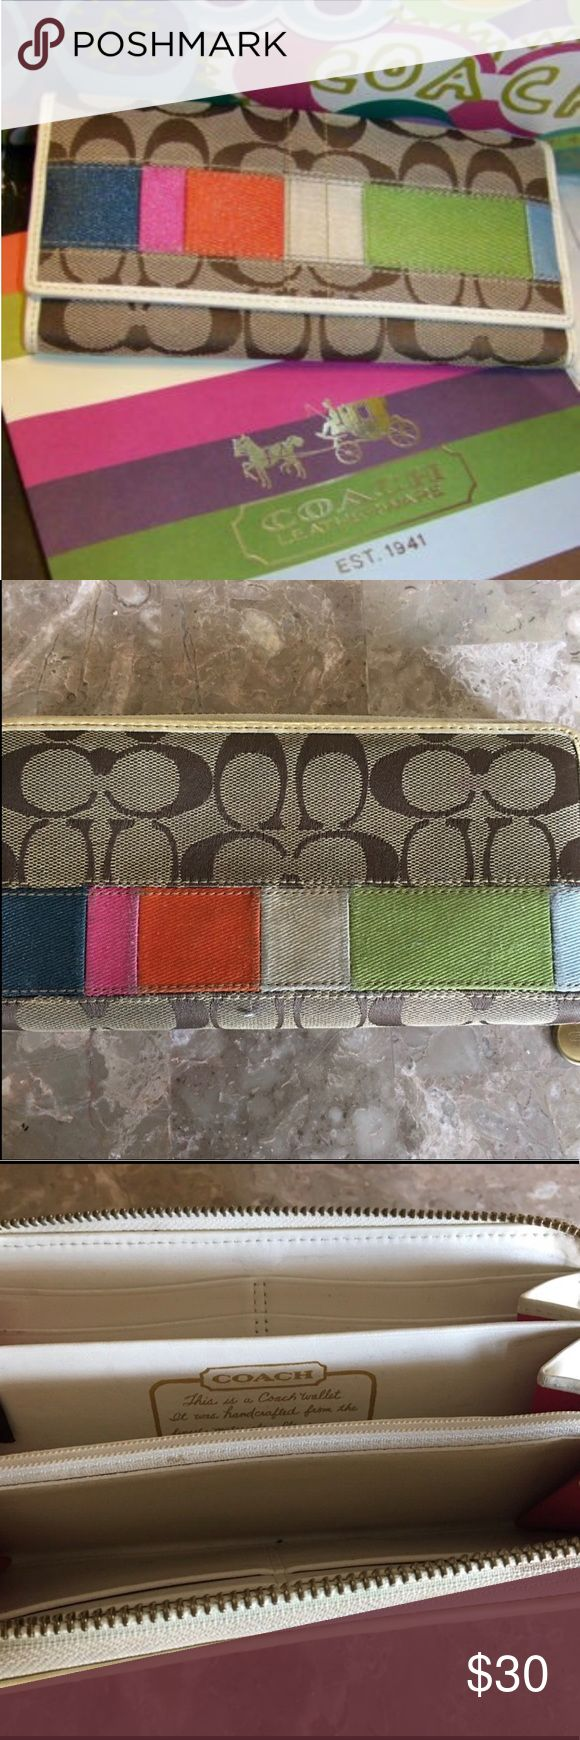 Coach Legacy multi stripe wallet COACH 40562 Legacy Stripe Signature Beige Jacquard Leather Long Wallet Clutch. EUC Coach Bags Wallets